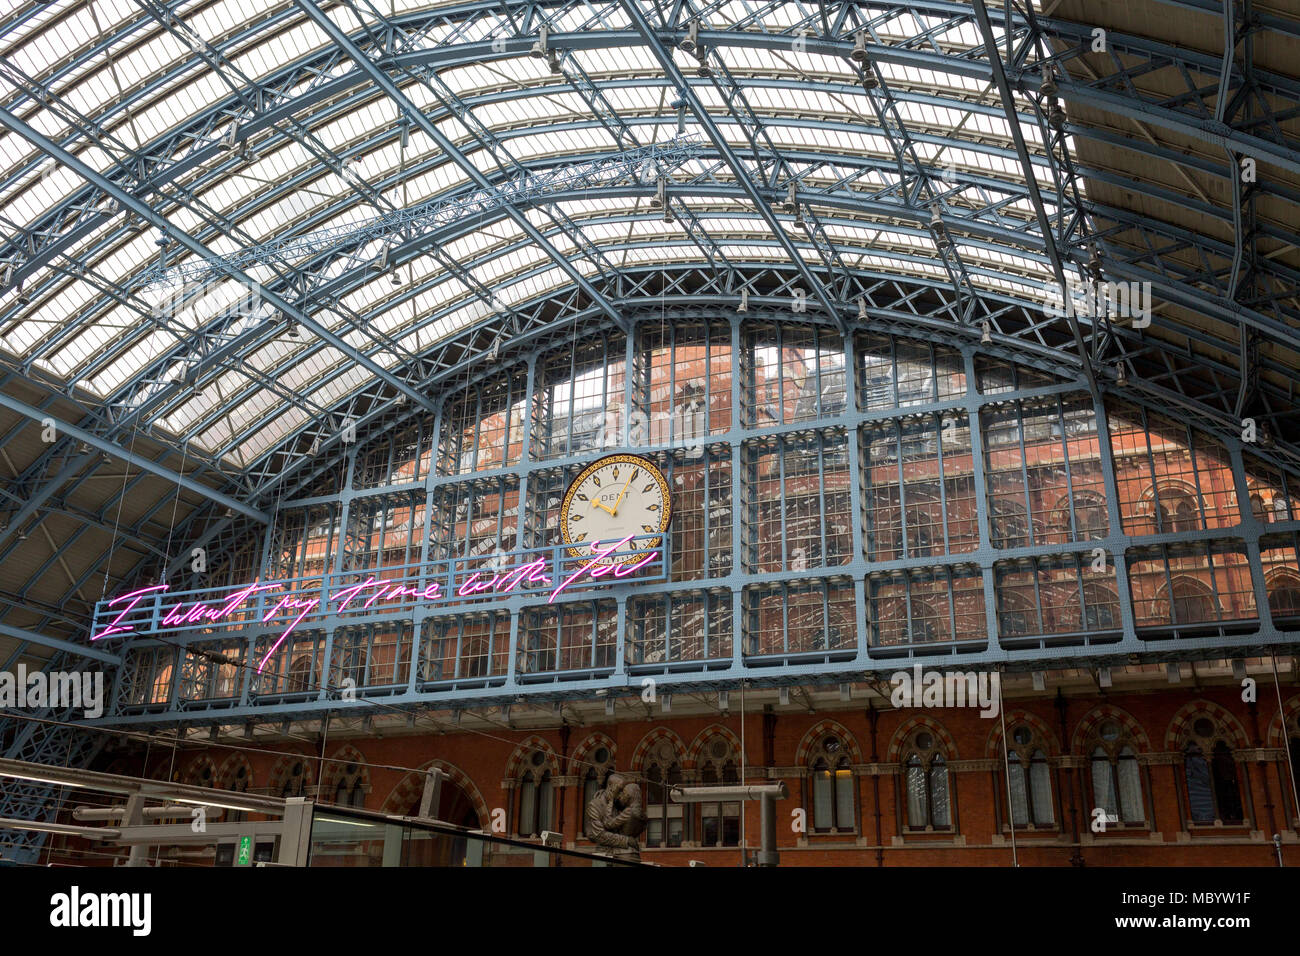 The new artwork entitled 'I Want My Time With You' by British (Britpop) artist Tracy Emin hangs over the main concourse at St. Pancras Station, on 10th April 2018, in London, England. In the sixth year of the Terrace Wires Commission - and in celebration of the 150th anniversary of St Pancras International and the 250th anniversary of the Royal Academy of Arts, at one of London's mainline station, the London hub for Eurostar - the 20 metre-long greeting to commuters reads 'I Want My Time With You' and Emin thinks that arriving by train and being met by a lover as they put their arms around the Stock Photo